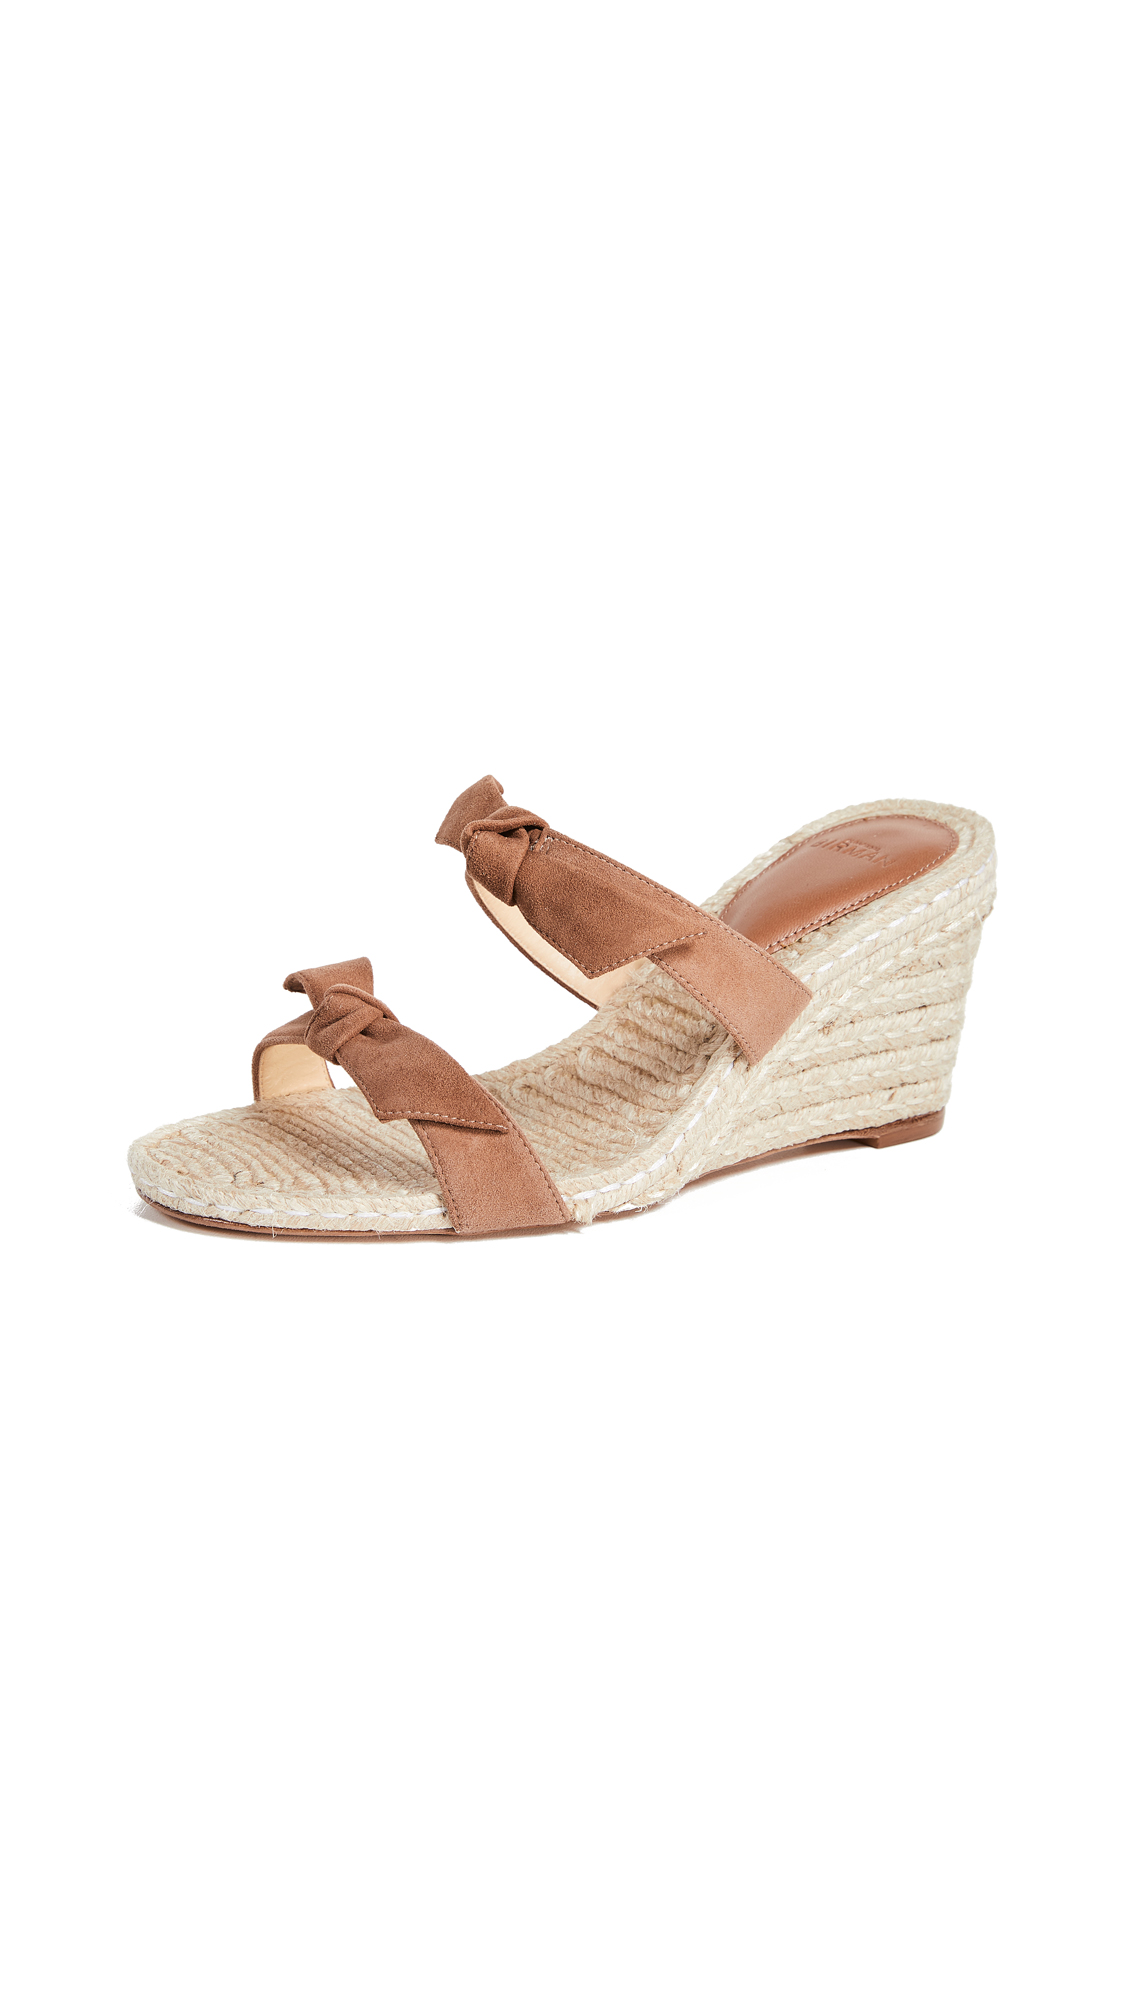 Alexandre Birman Clarita Braided Espadrilles - Cobble/Natural